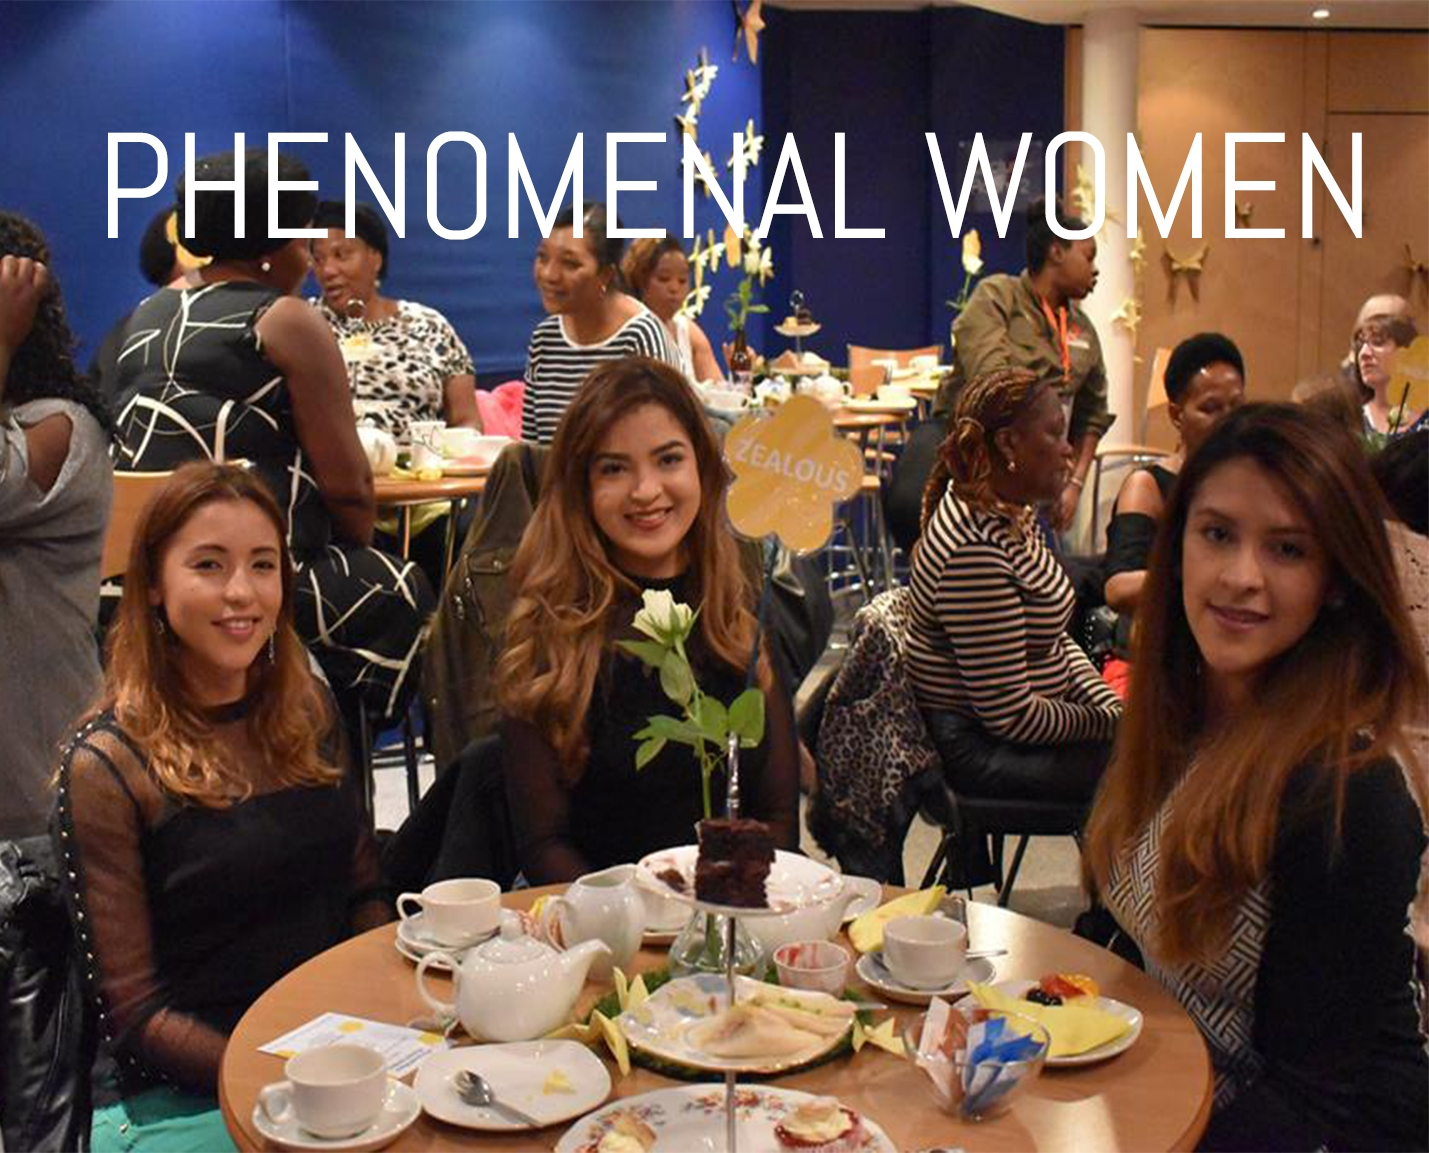 Phenomenal Women is a group for all those lovely ladies. It's a time to enjoy things such as cake and laughter. We regularly get very gifted speakers in - and to be honest it's great to get some girl time!